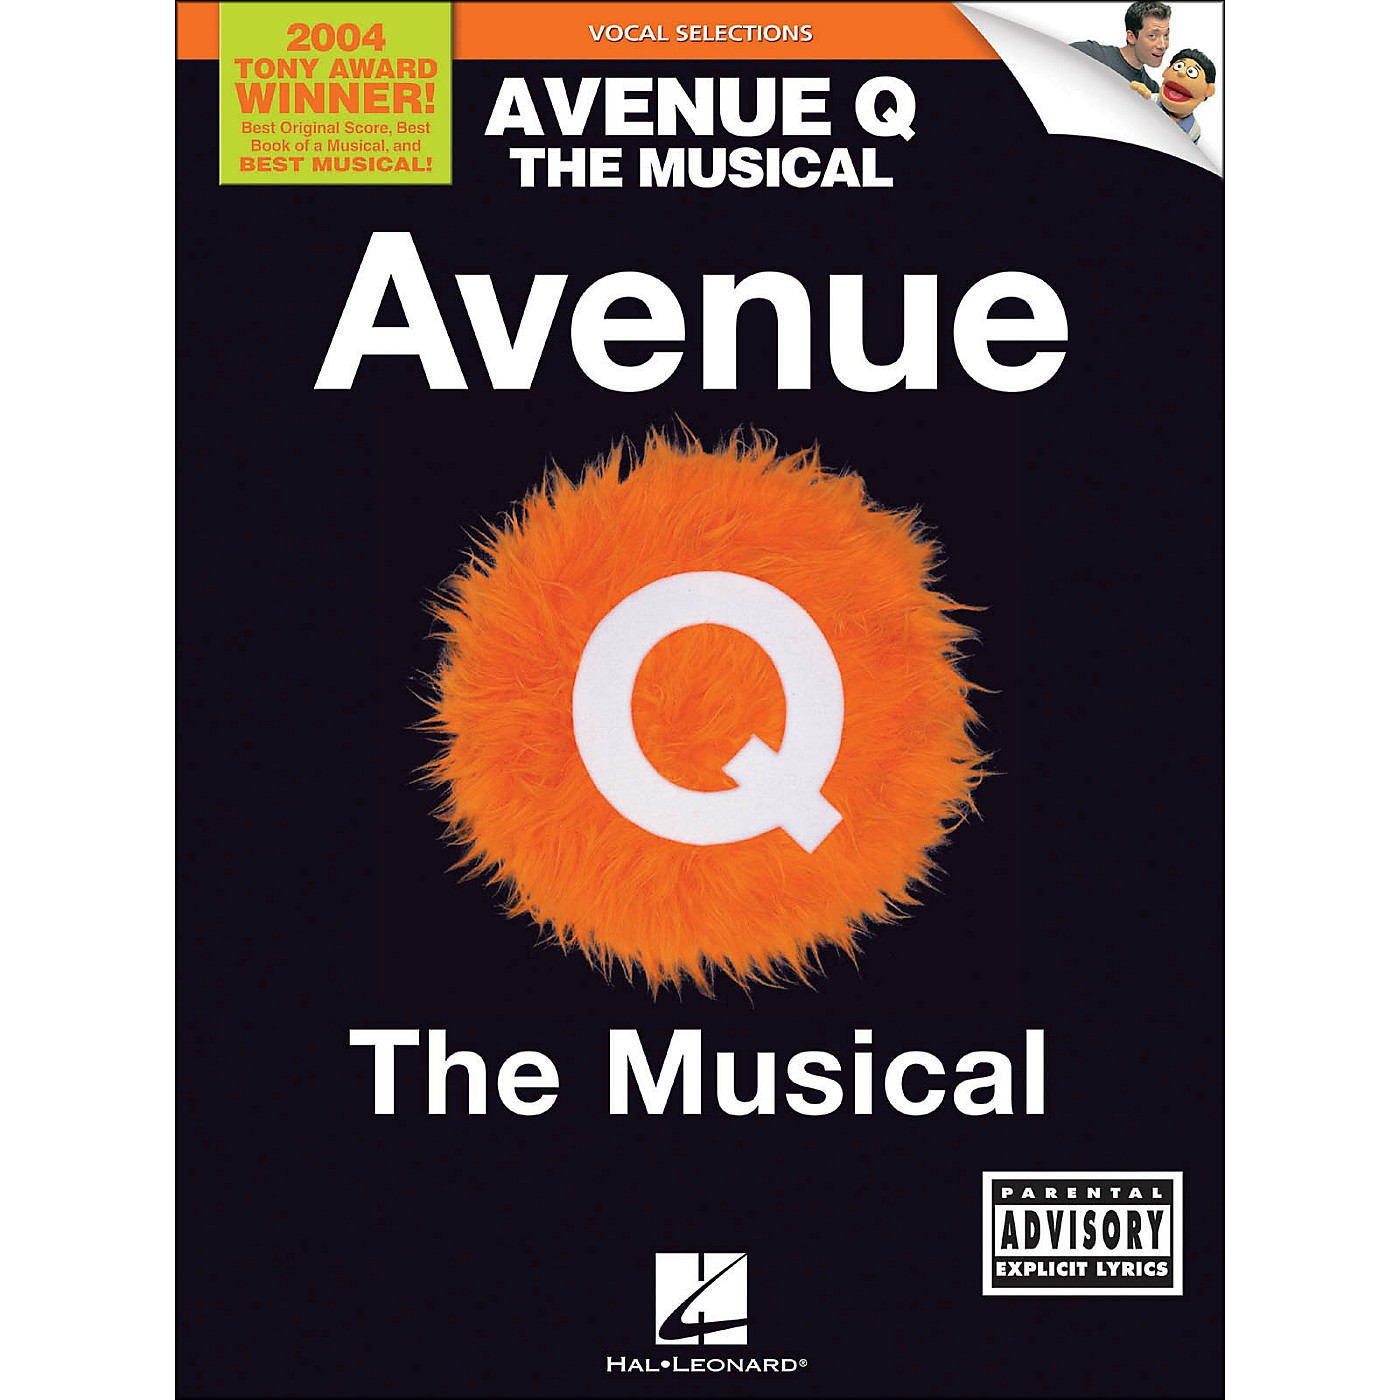 Hal Leonard Avenue Q - The Musical Vocal Selections arranged for piano, vocal, and guitar (P/V/G) thumbnail